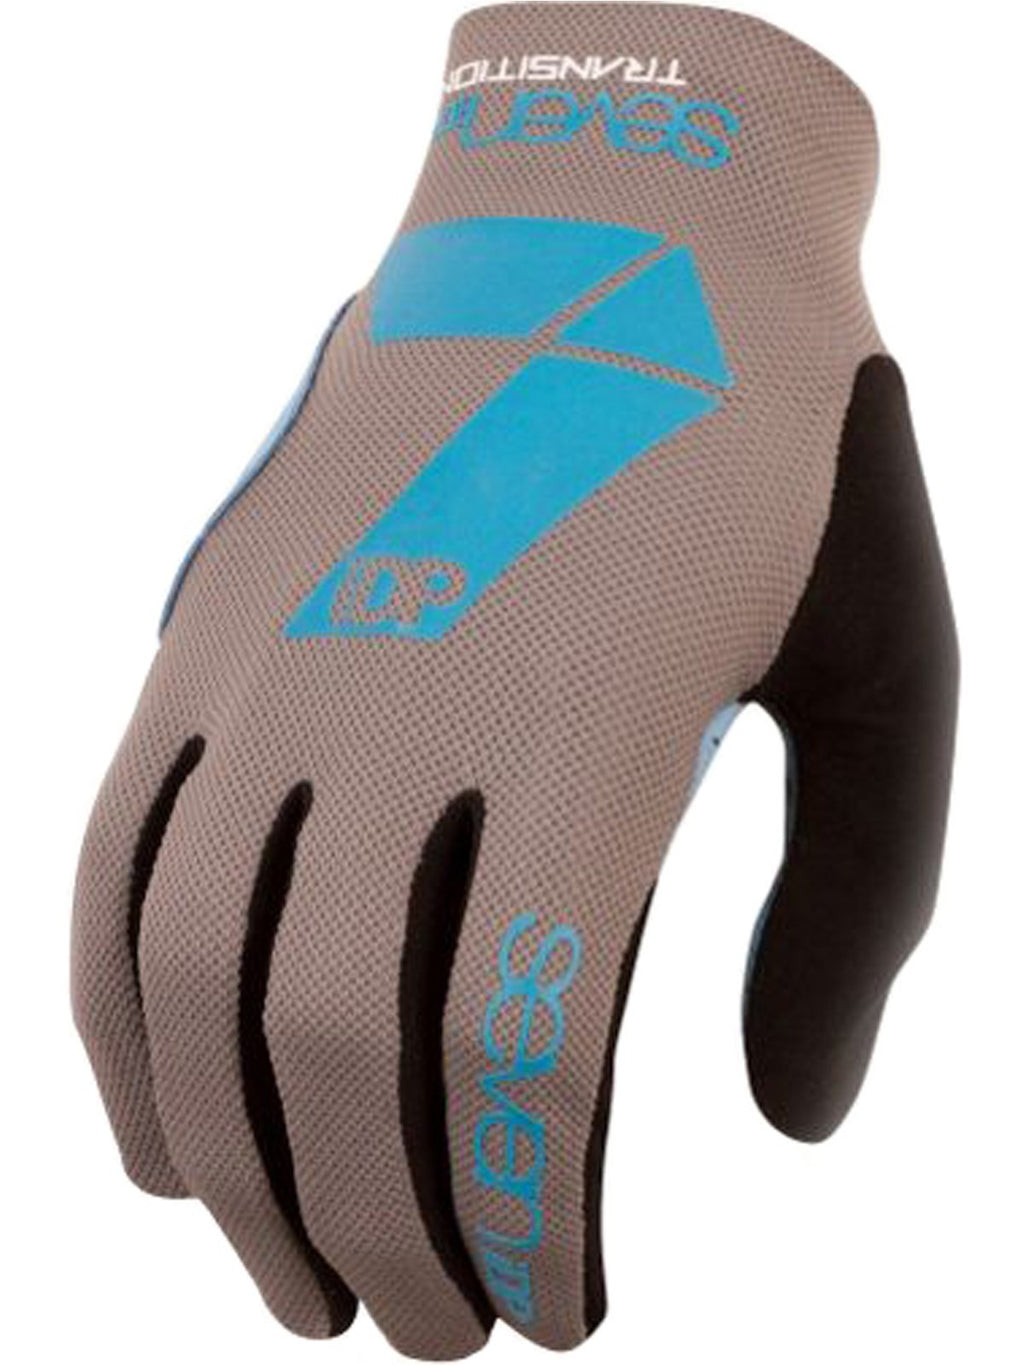 7IDP TRANSITION GLOVE GRAPHITE ELECTRIC BLUE SIZE S - Bike technics